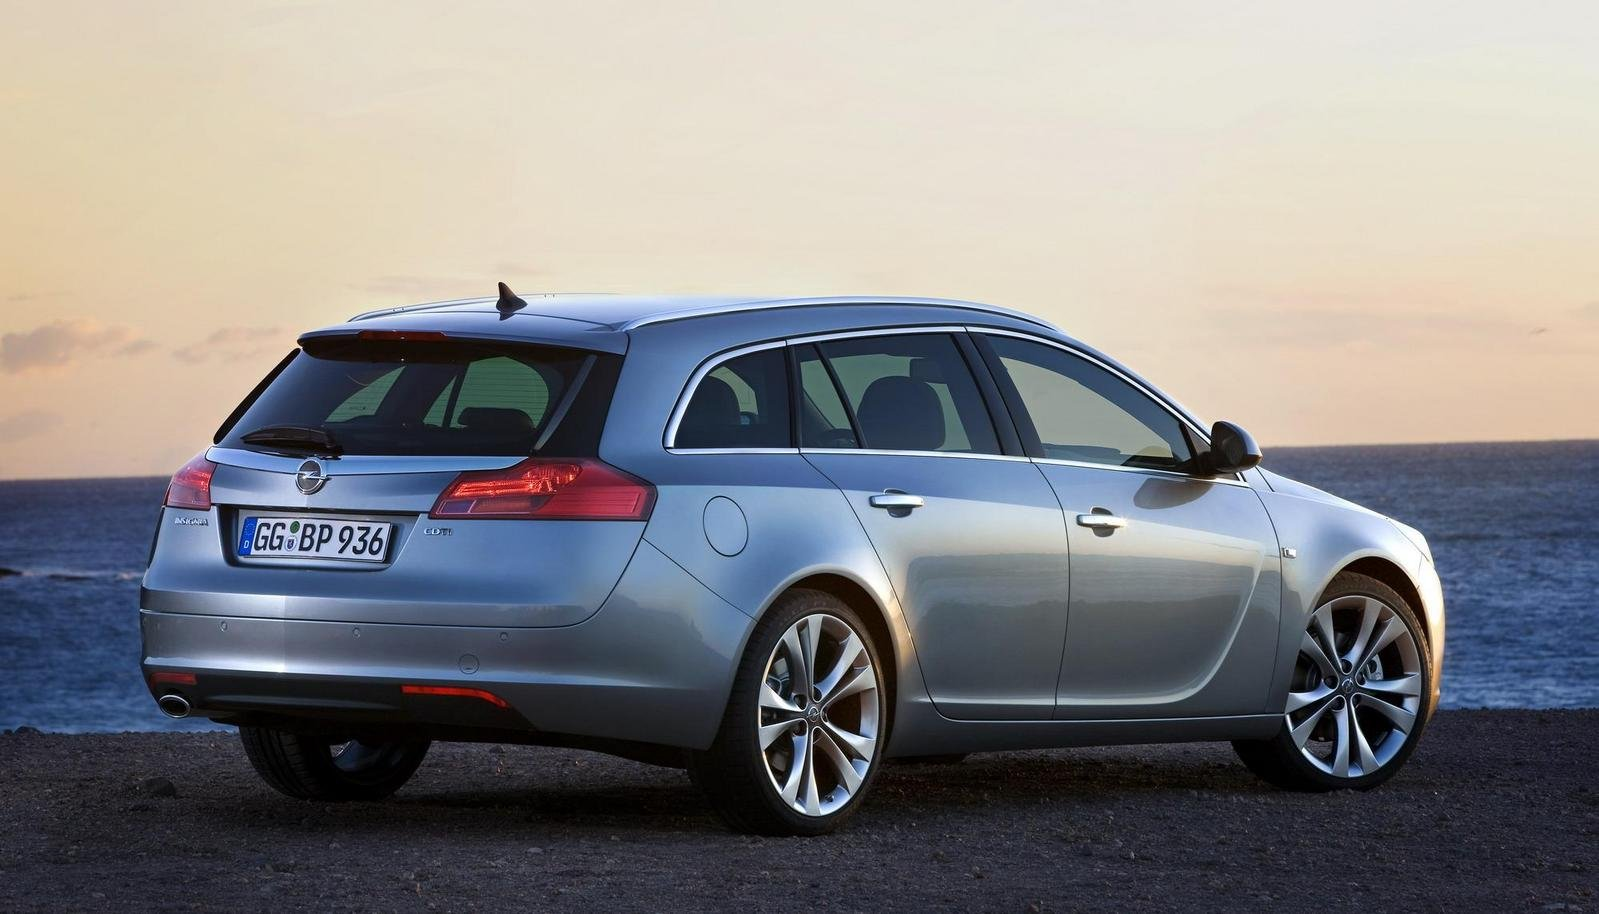 2009 opel insignia sports tourer picture 291048 car review top speed. Black Bedroom Furniture Sets. Home Design Ideas